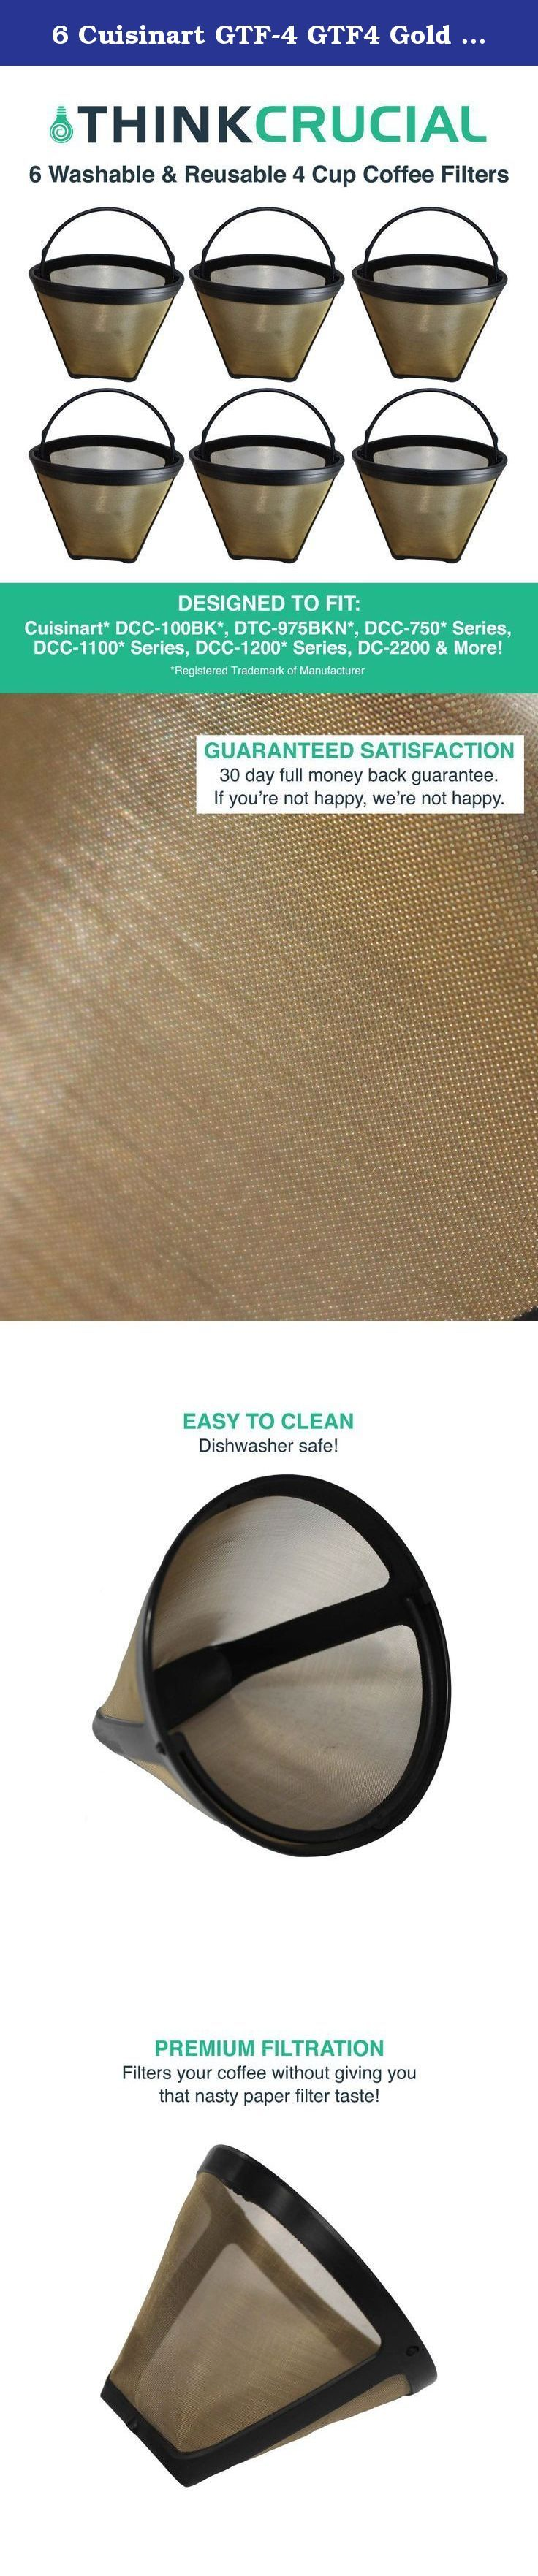 how to use cuisinart coffee maker filter